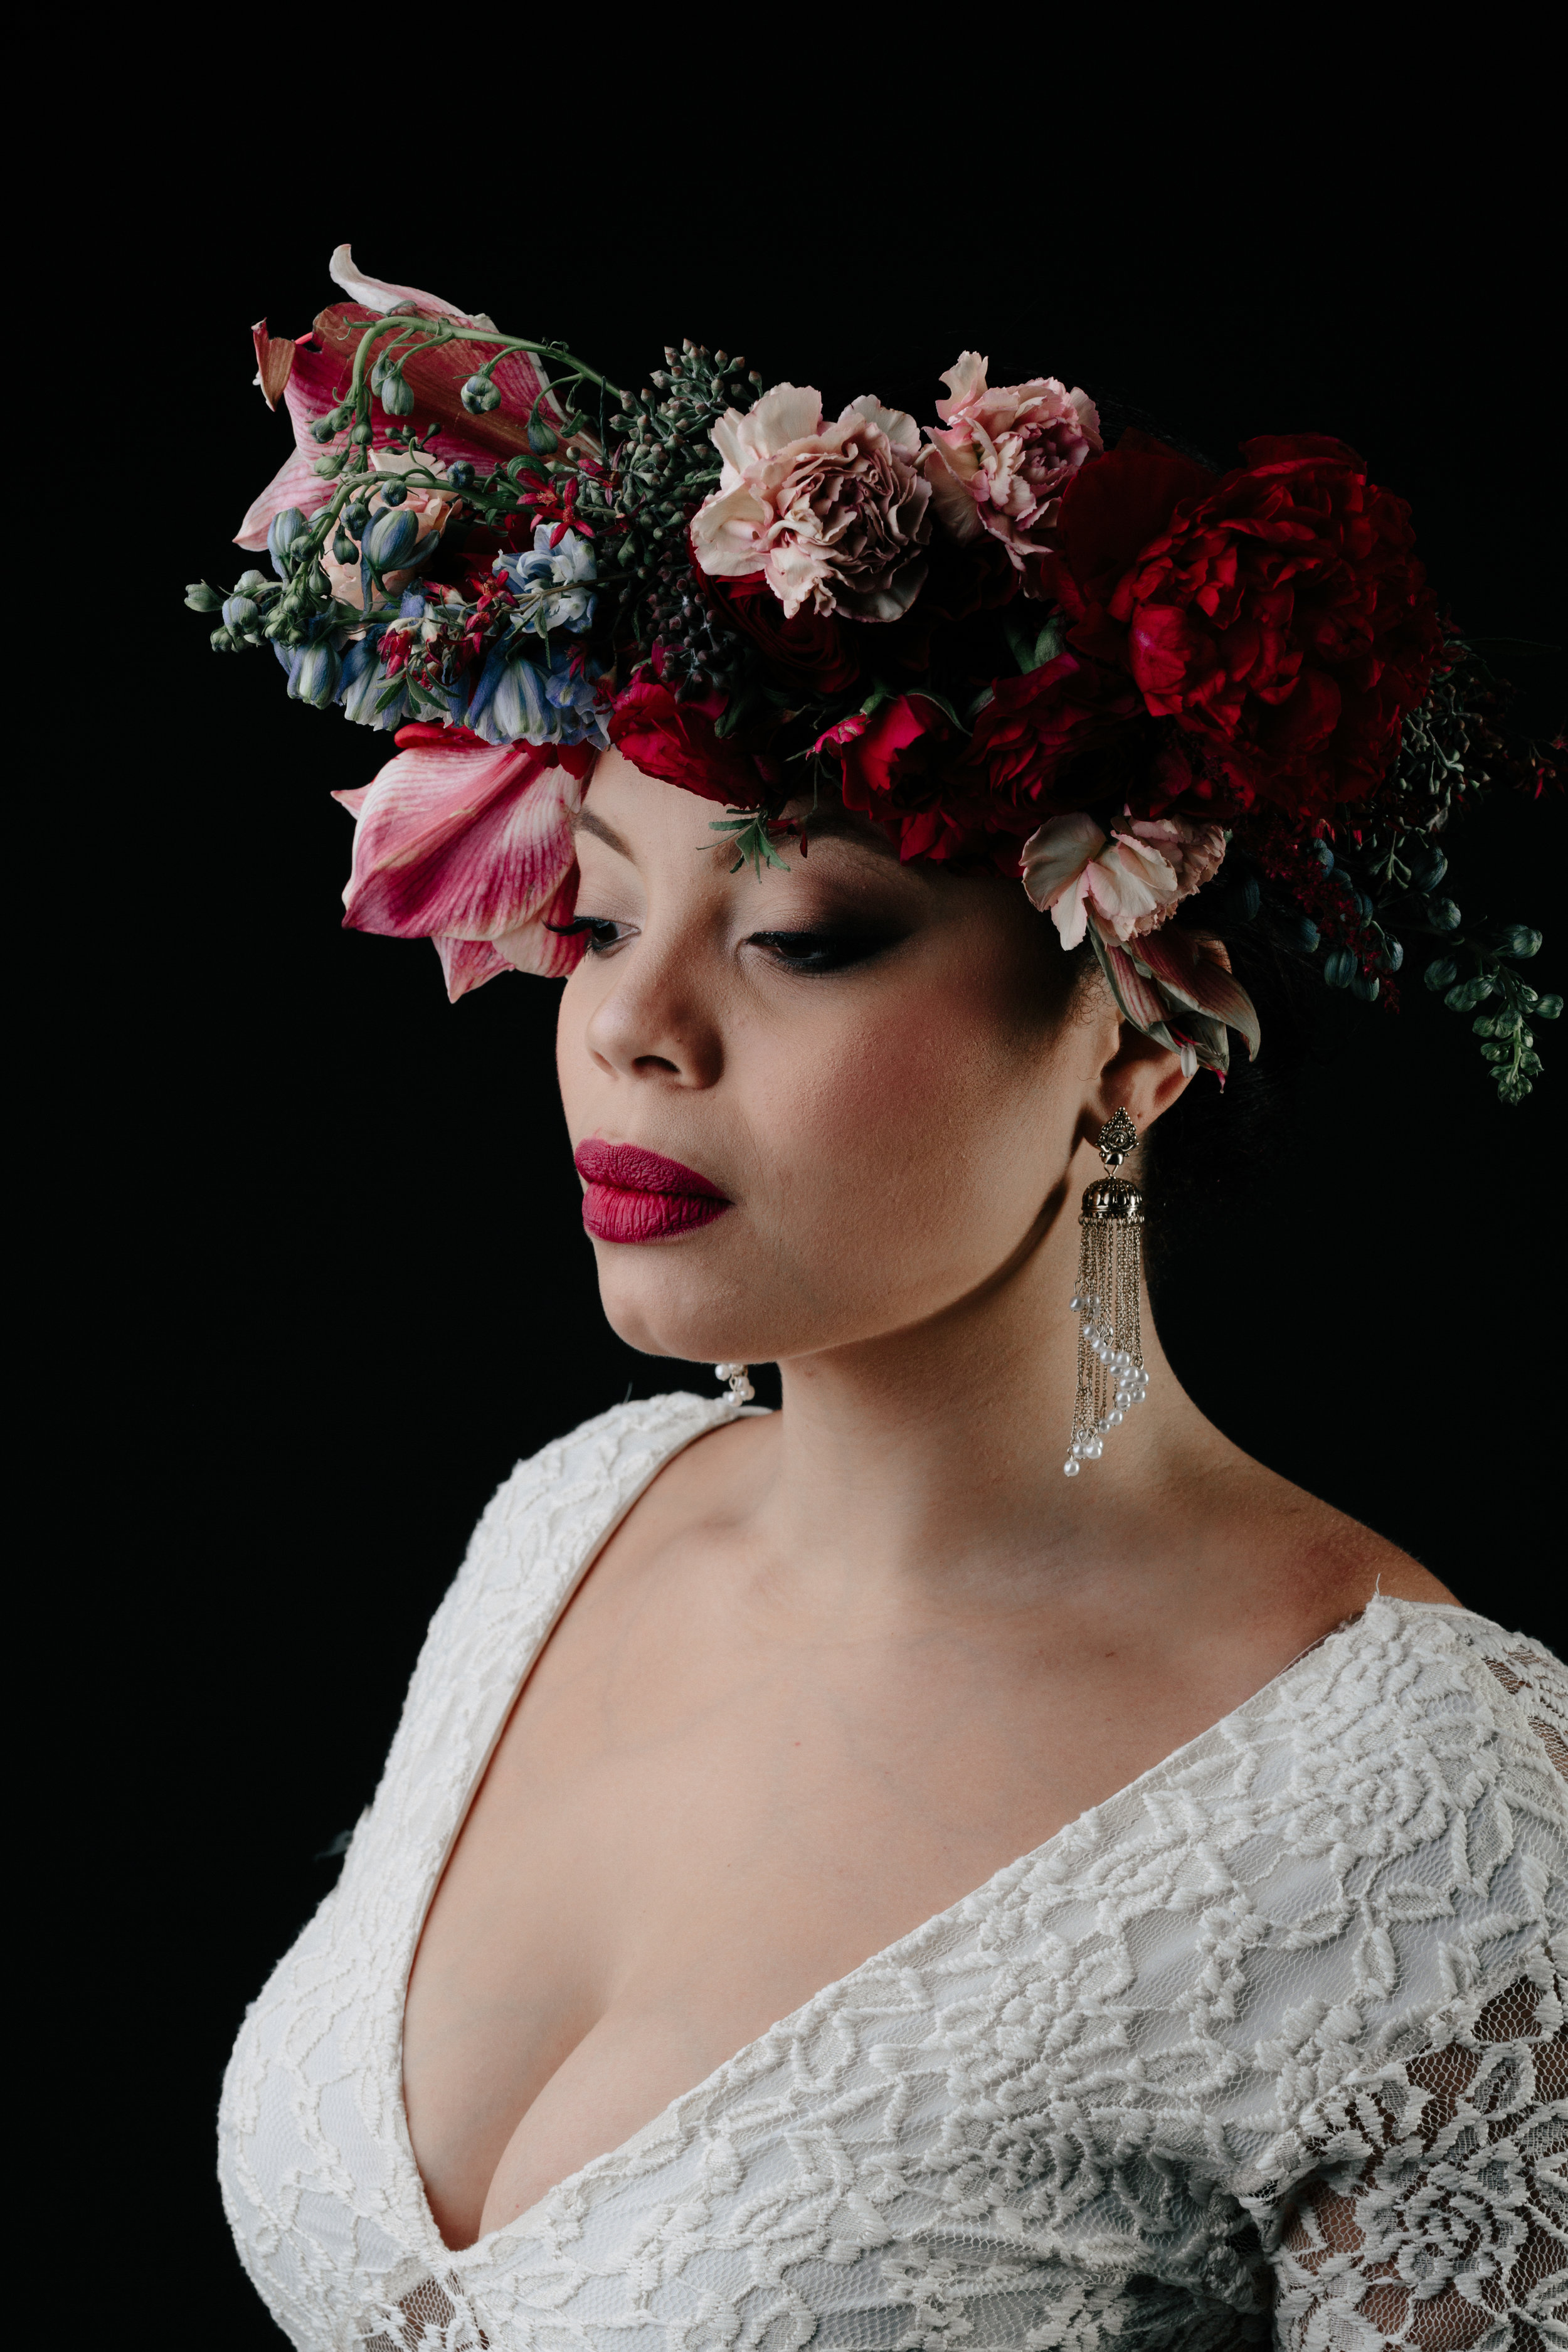 I dream of a world where peace is the only option. Where color is grey and hate is extinct.-Anastasia- - Photography: Michelle Scott | Dress: Free People | Earrings: Sparkling Sage | Floral: Victory Blooms | Hair & Makeup: Grace Armas